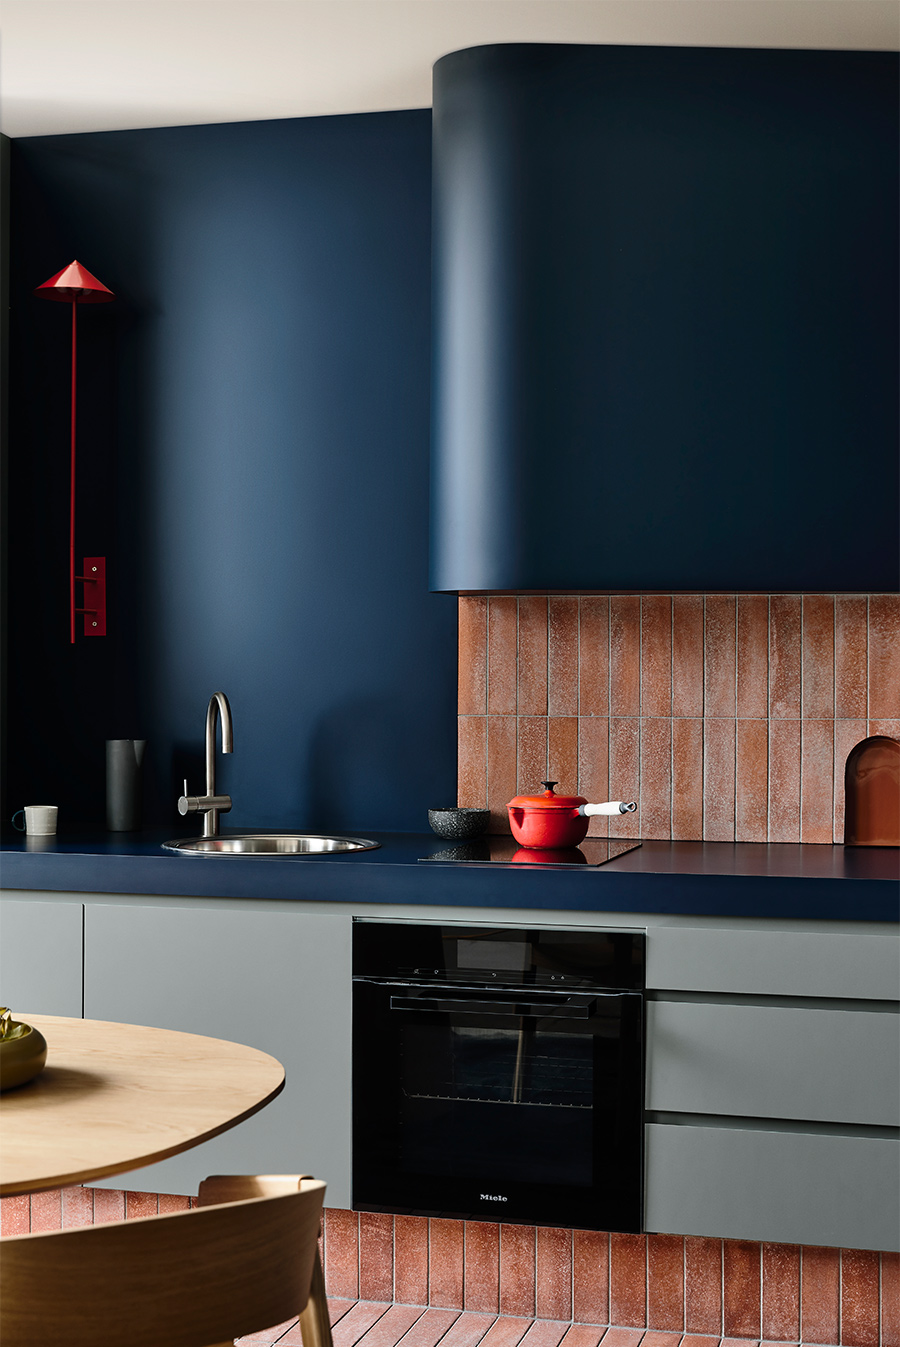 Studio-Kitchen-by-Kennedy-Nolan-featuring-Laminex-AbsoluteMatte